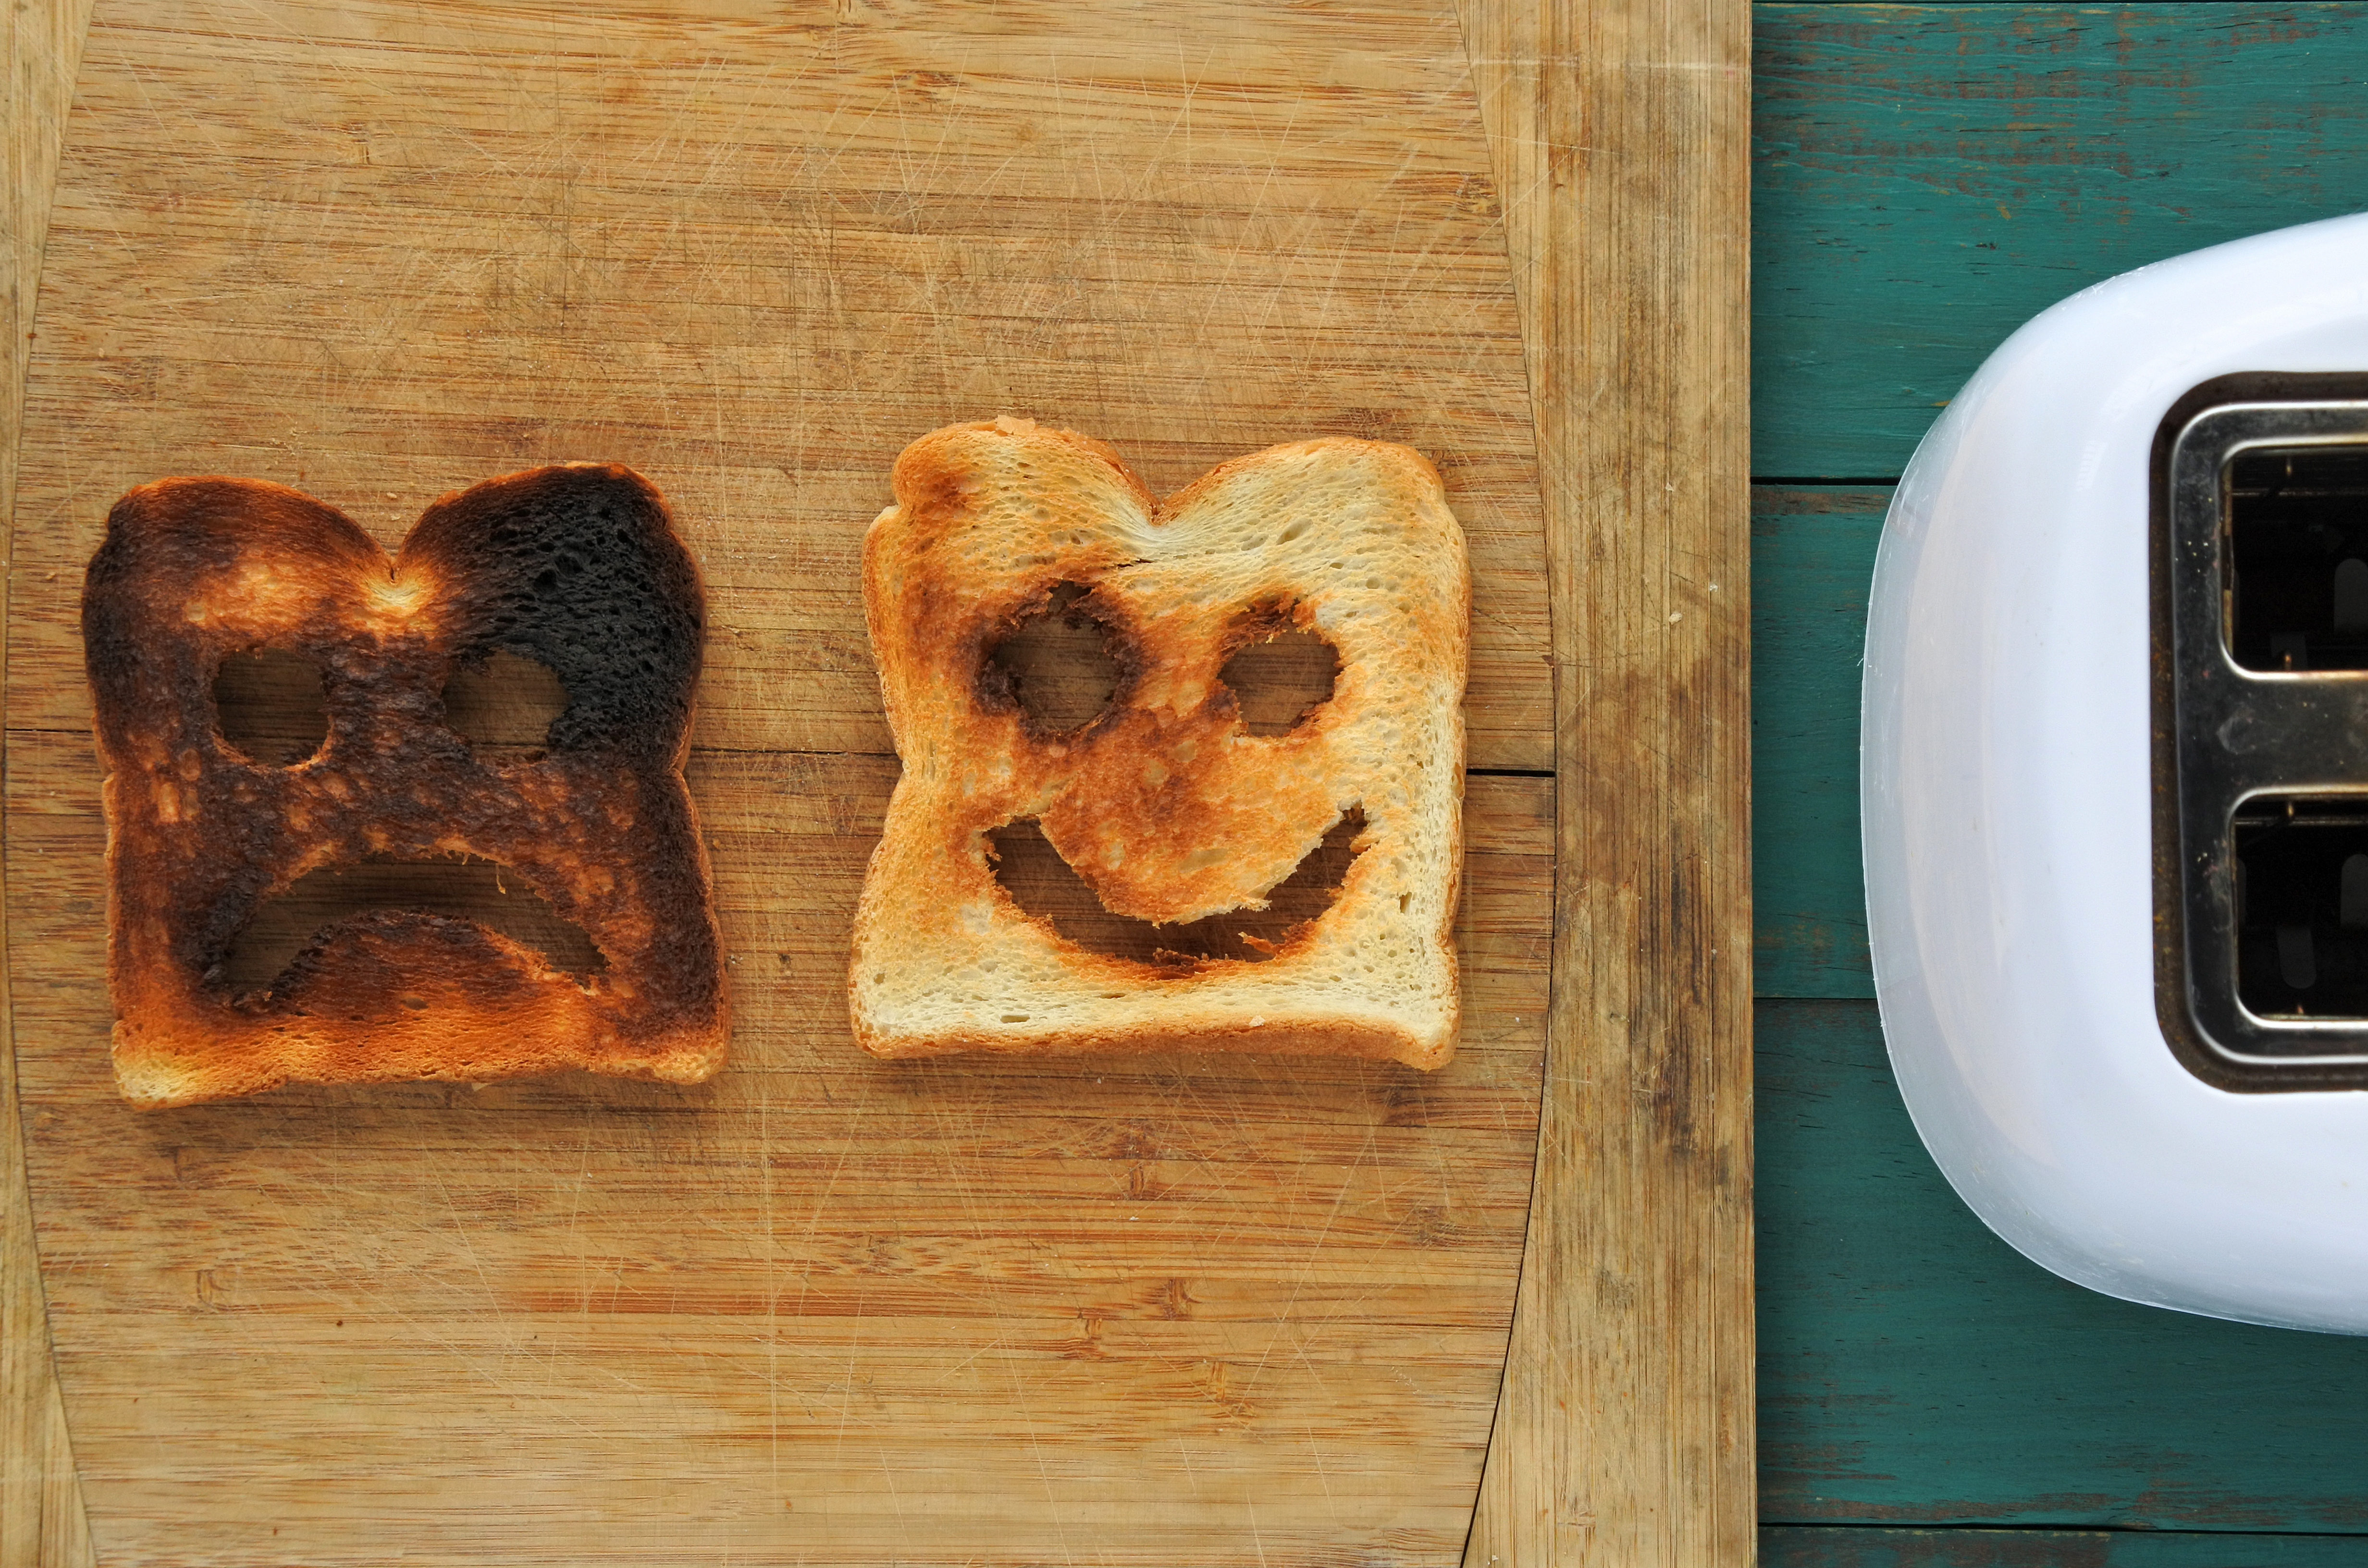 two pieces of toast on a table by a toaster, one black and dark brown (burned) with a sad face carved into it, one paler brown and white with a happy face carved into it